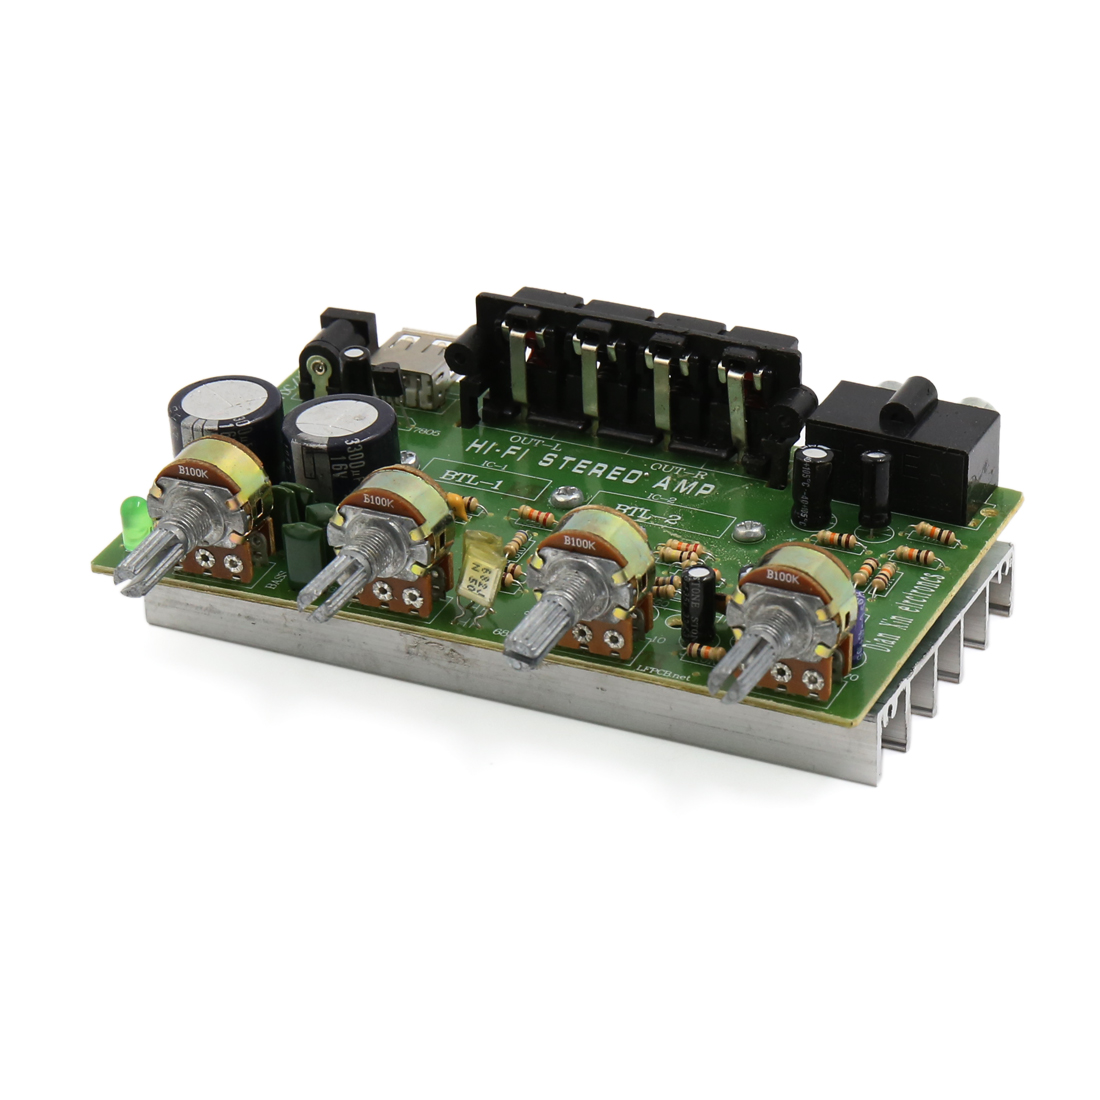 DC 12V-15V 200W Hi-Fi Audio Stereo Power Amplifier Board for Motorcycle Car